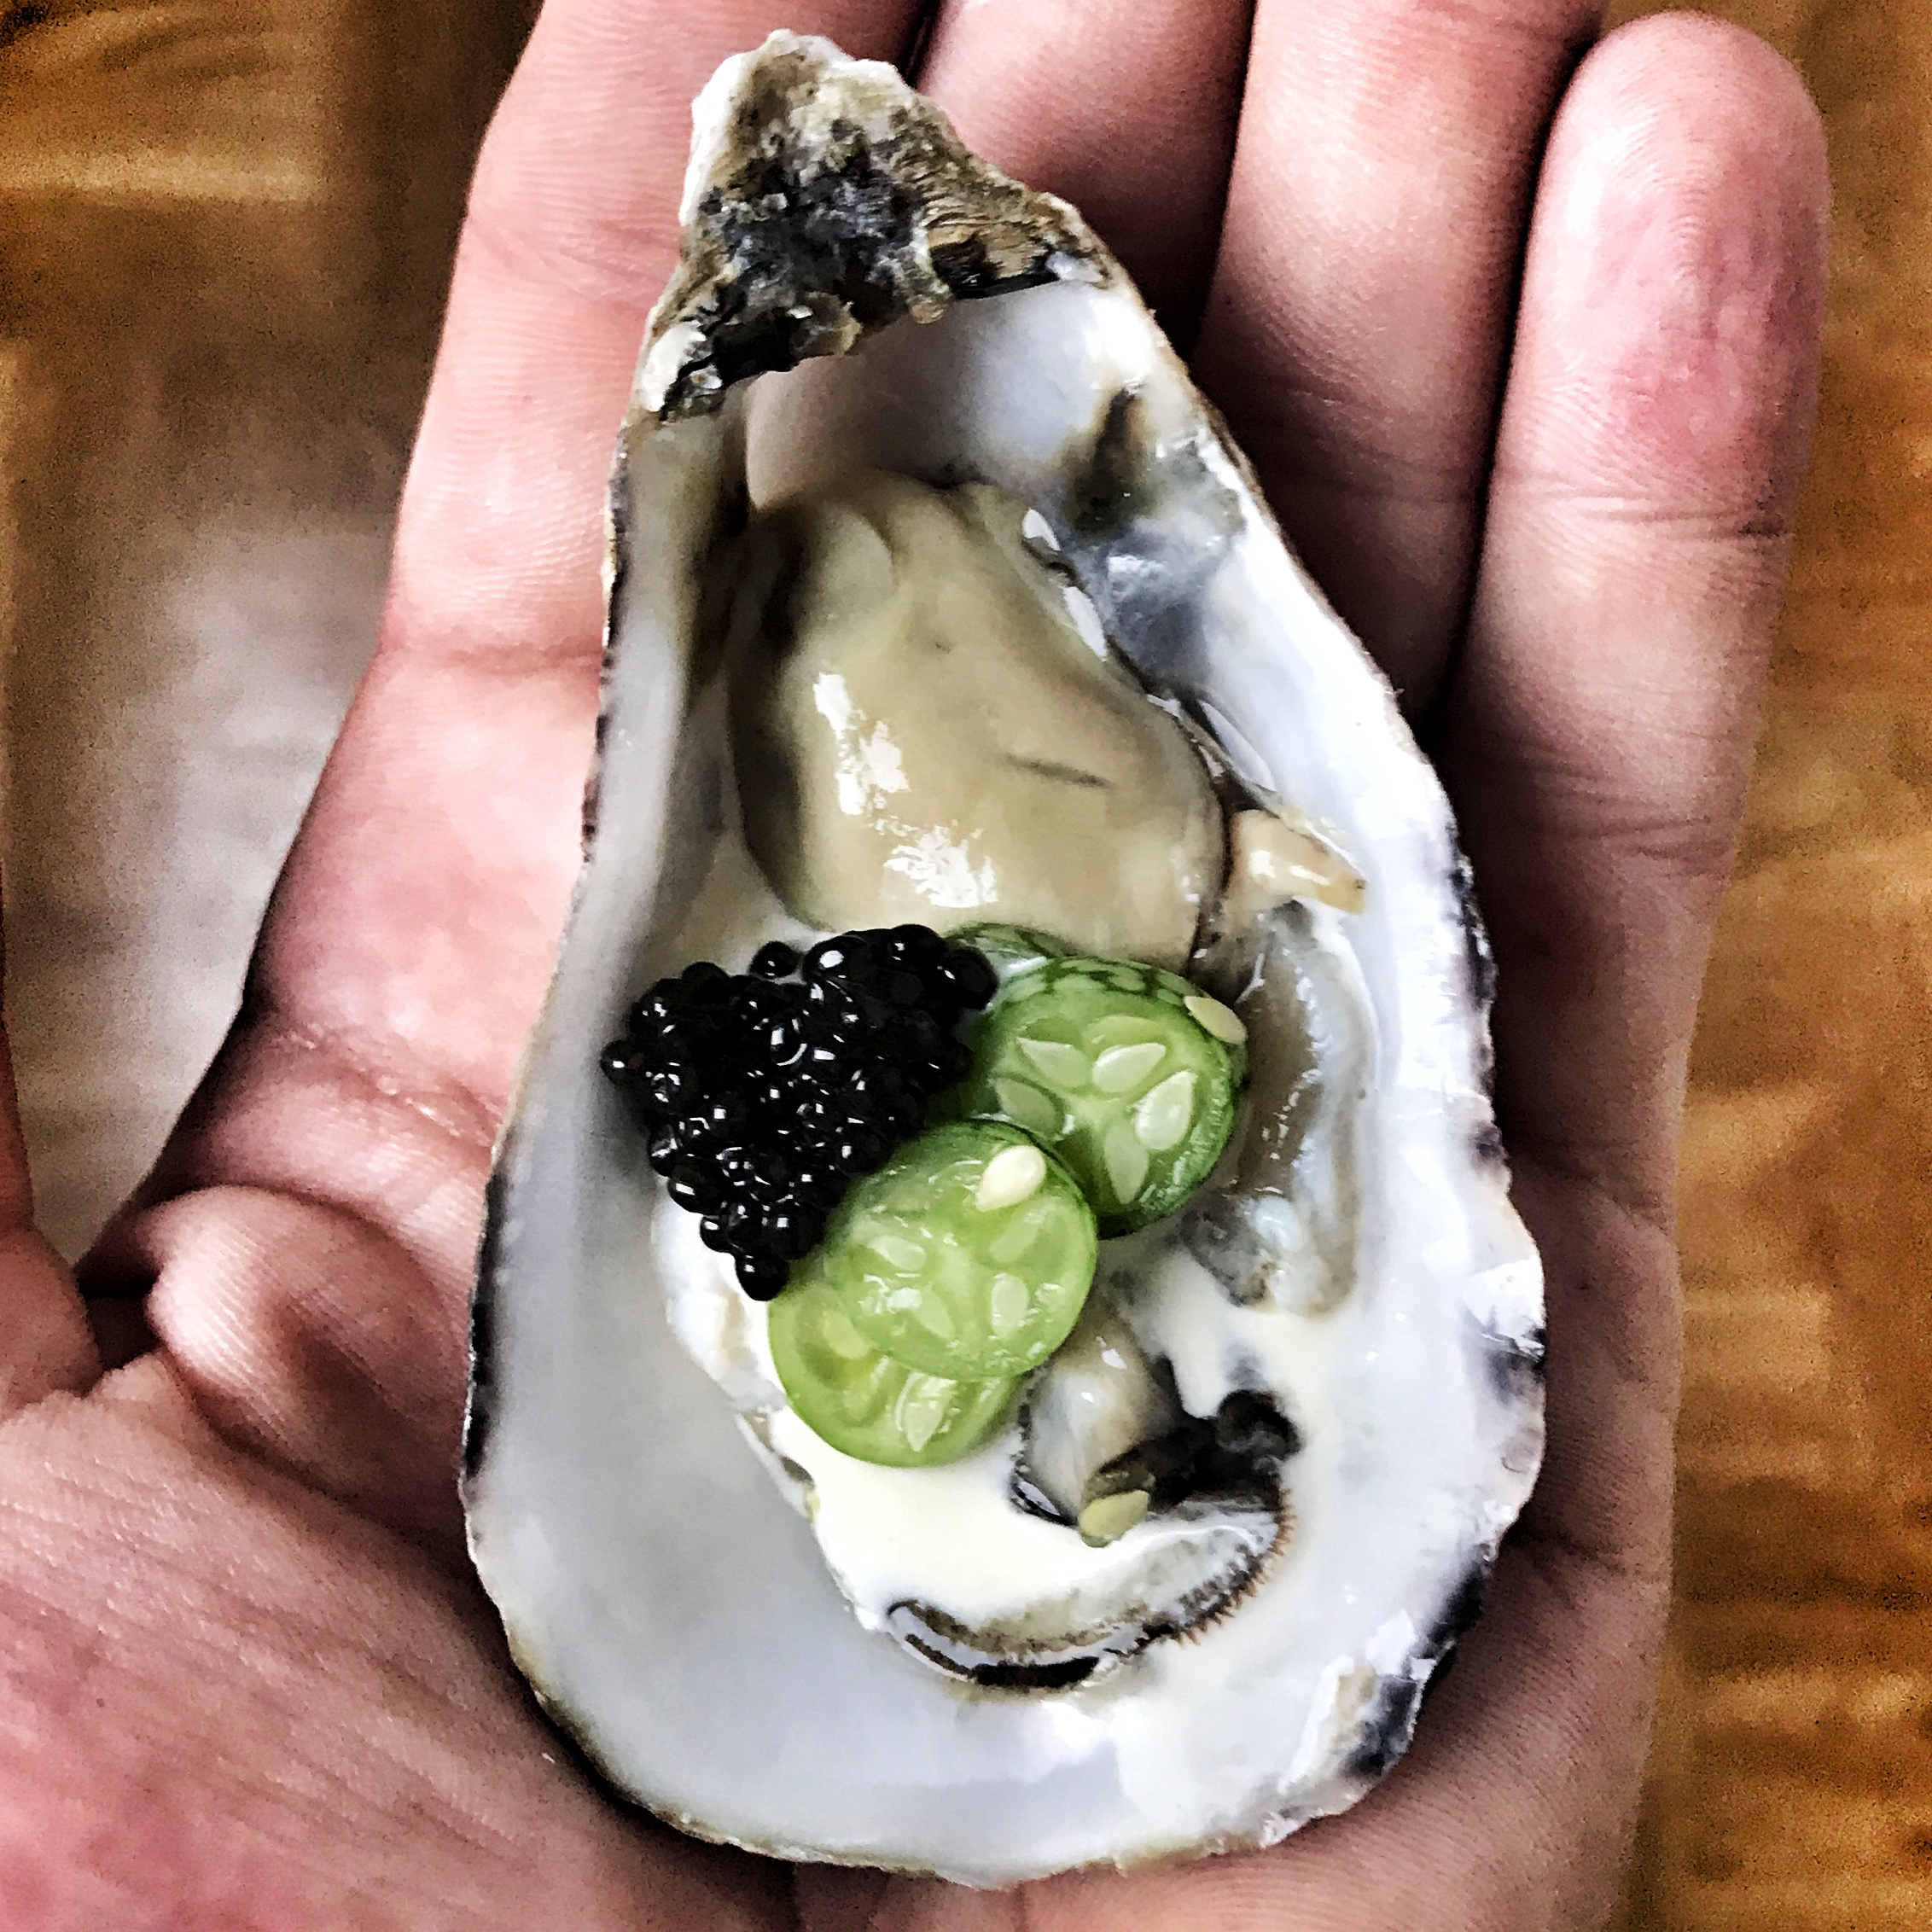 Oysters, Mexican cucumbers and caviar.